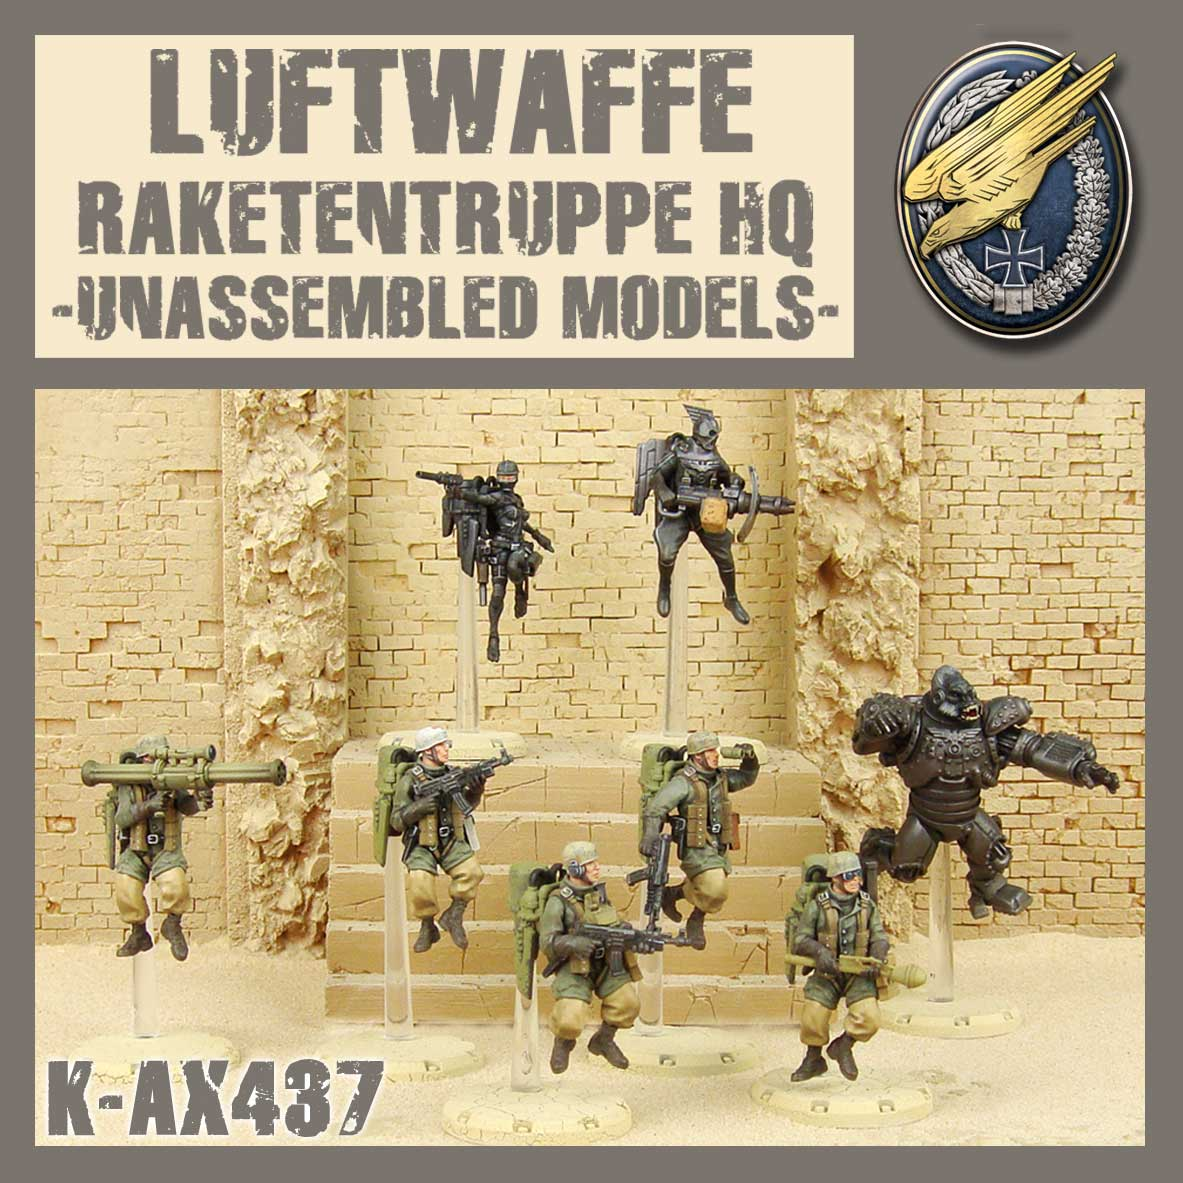 Raketentruppe HQ Kit